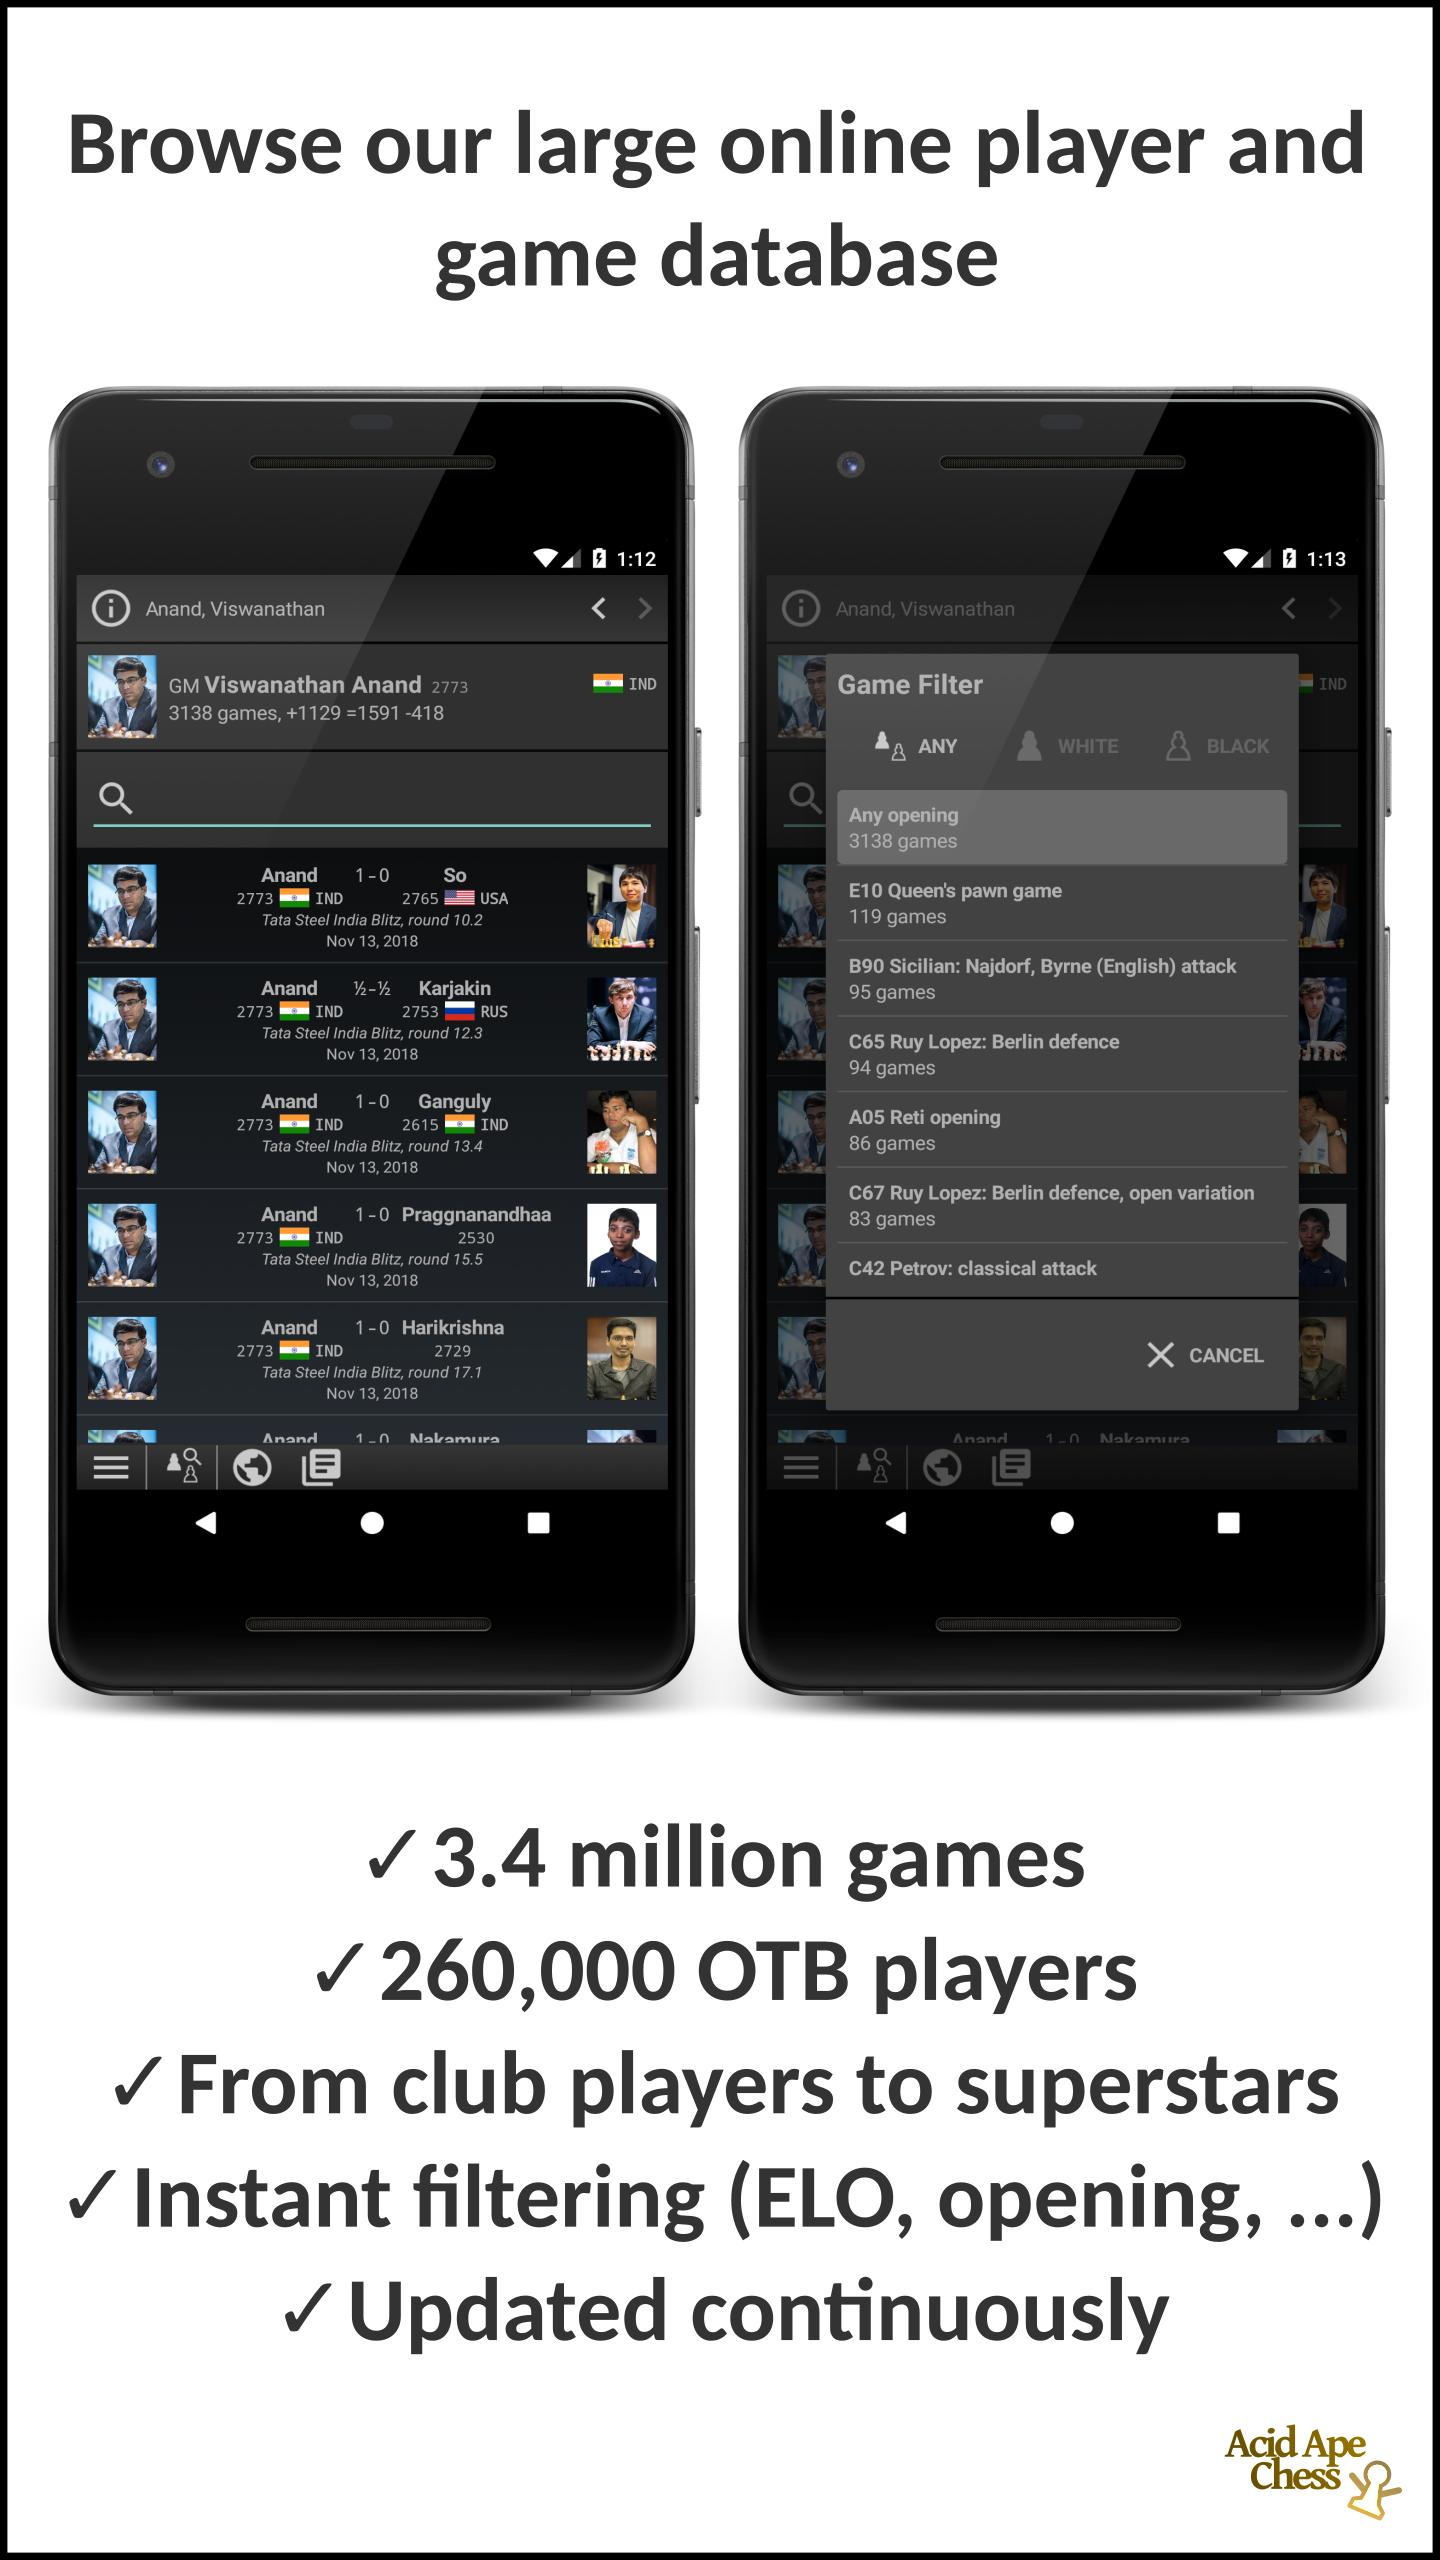 Acid Ape Chess Grandmaster Edition for Android - APK Download